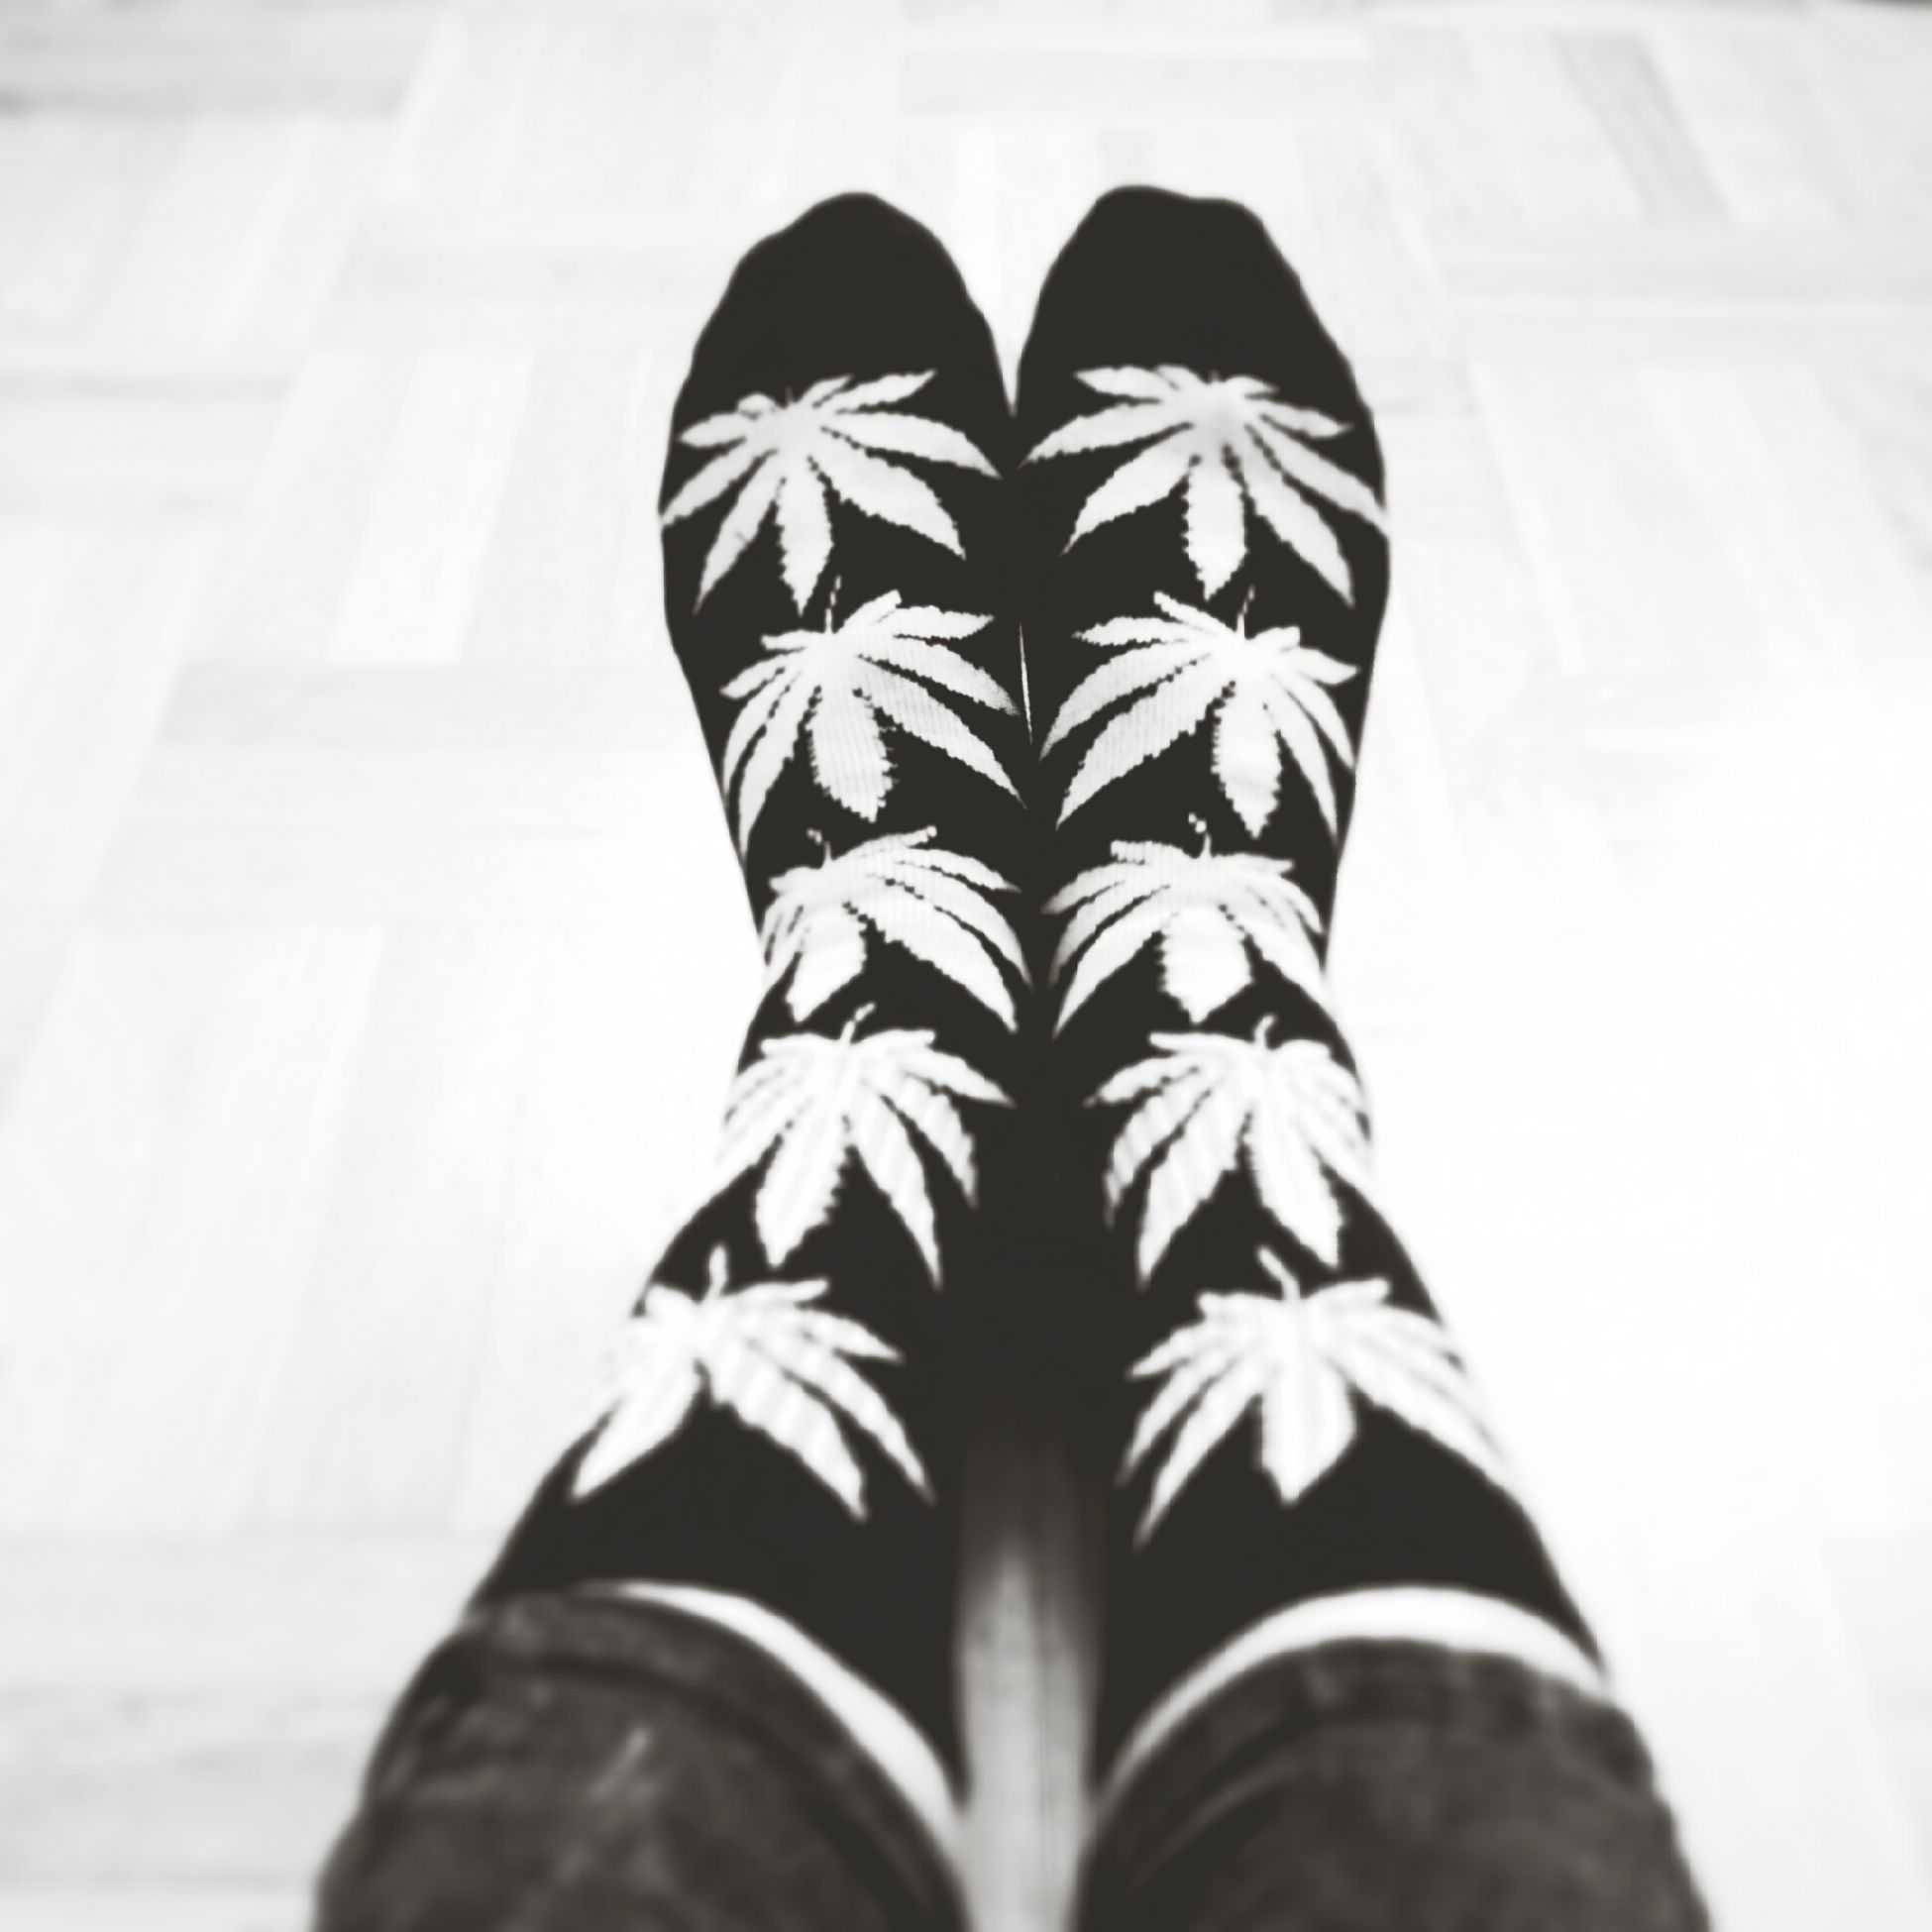 HUFsocks are best!*.* Lovelovelove Huf Socks Huffsocks <3 Hufsocks